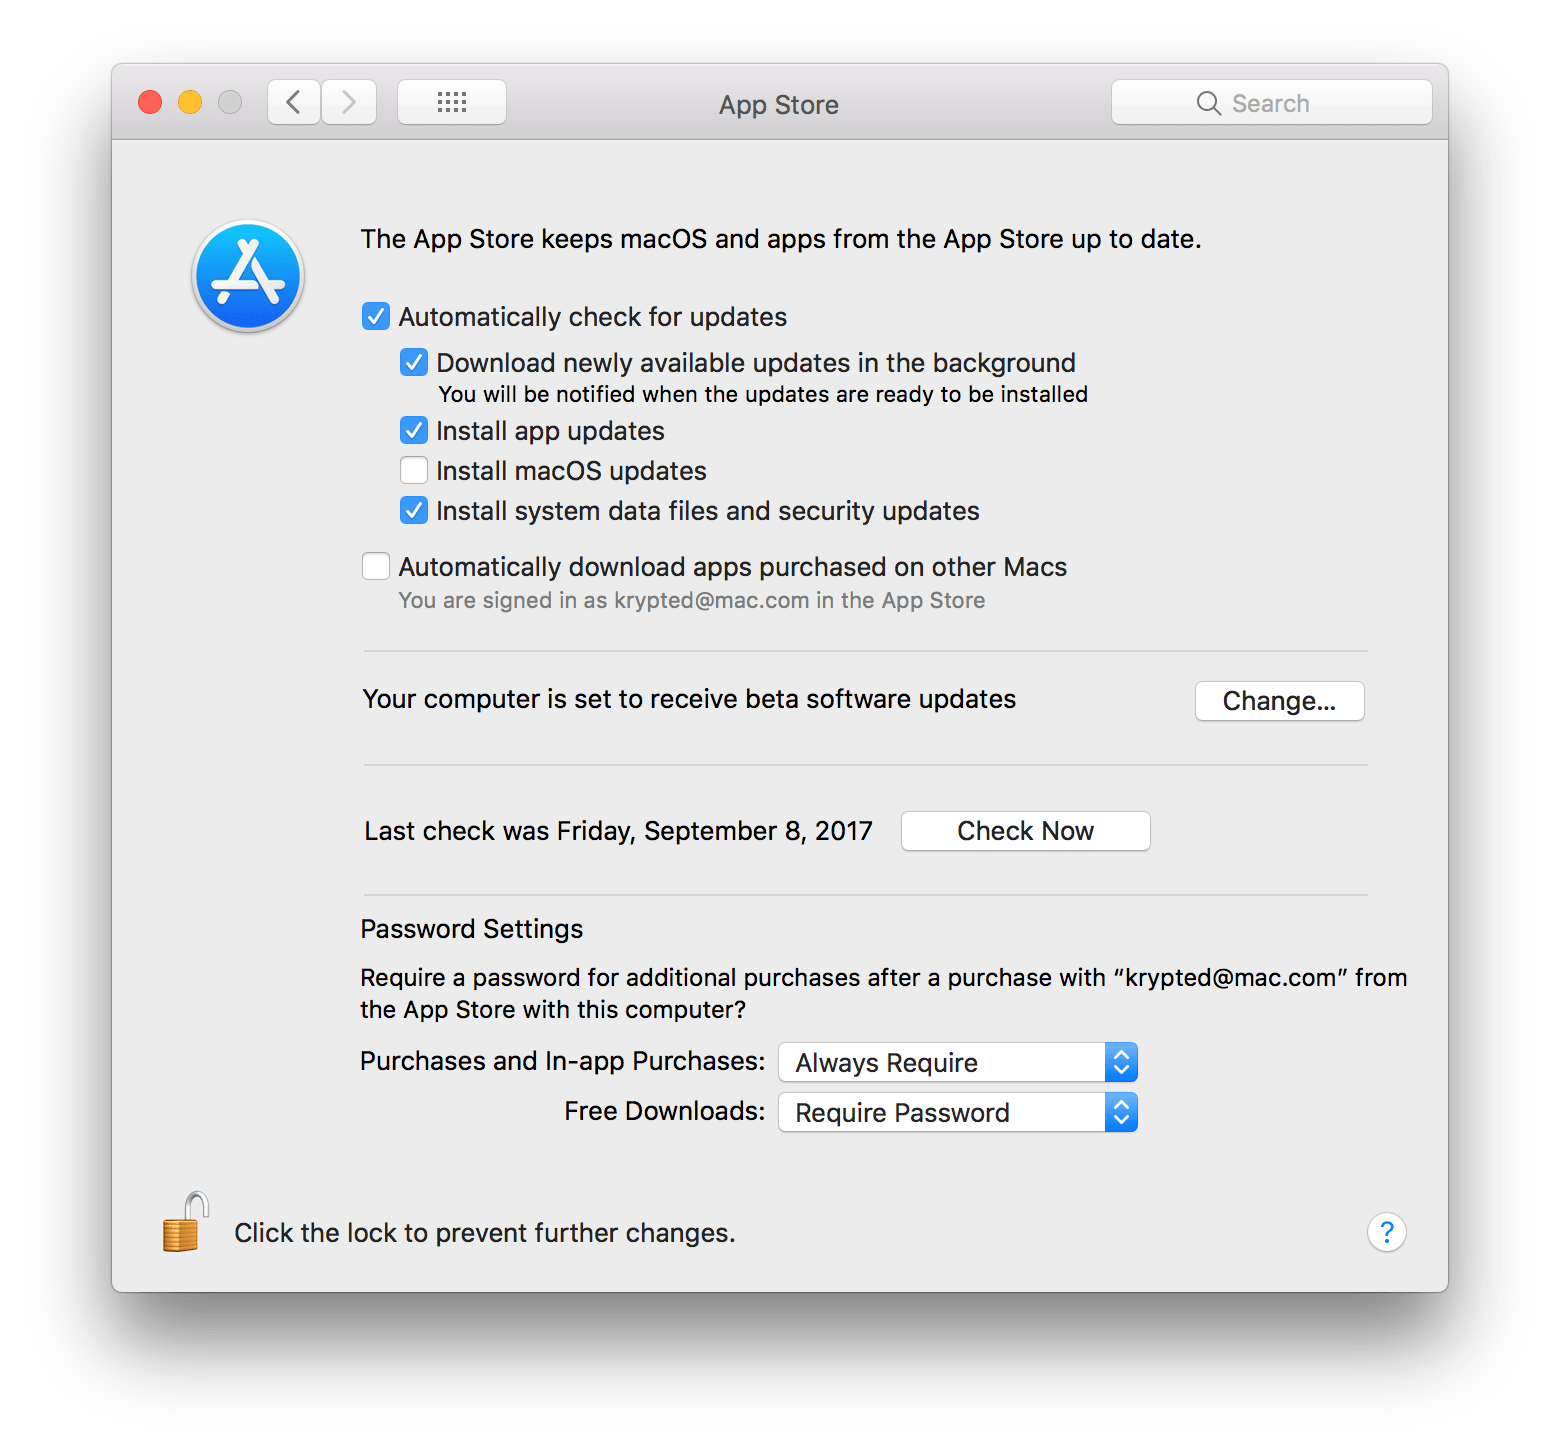 App Store Preferences To Set In On Server 5 4 for macOS High Sierra